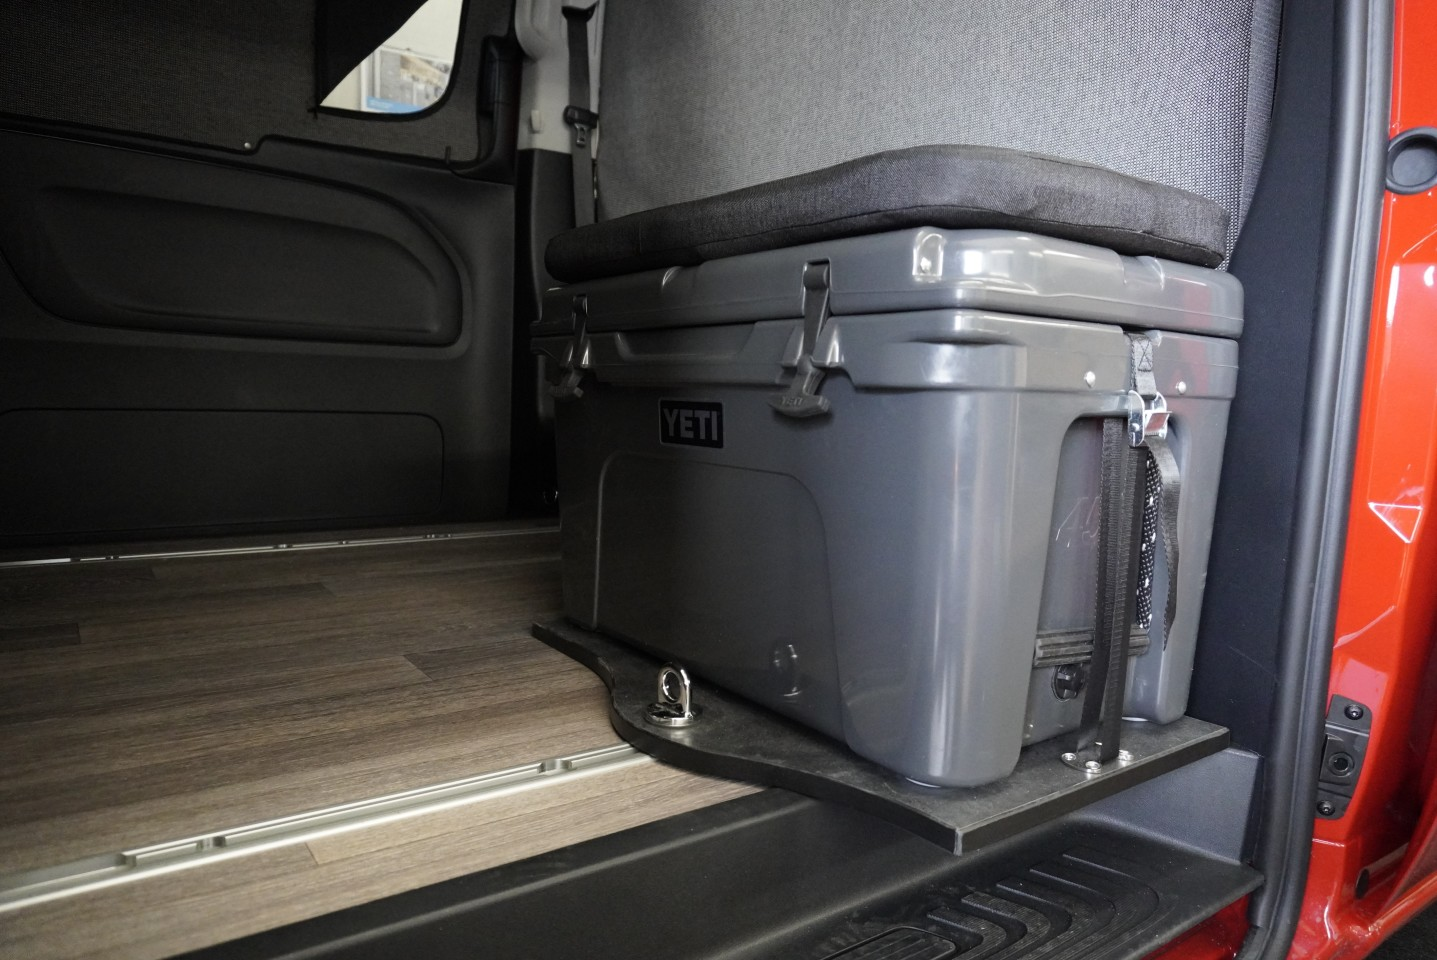 Not only does the available Yeti cooler offer always-useful cold storage, it doubles as an extra seat